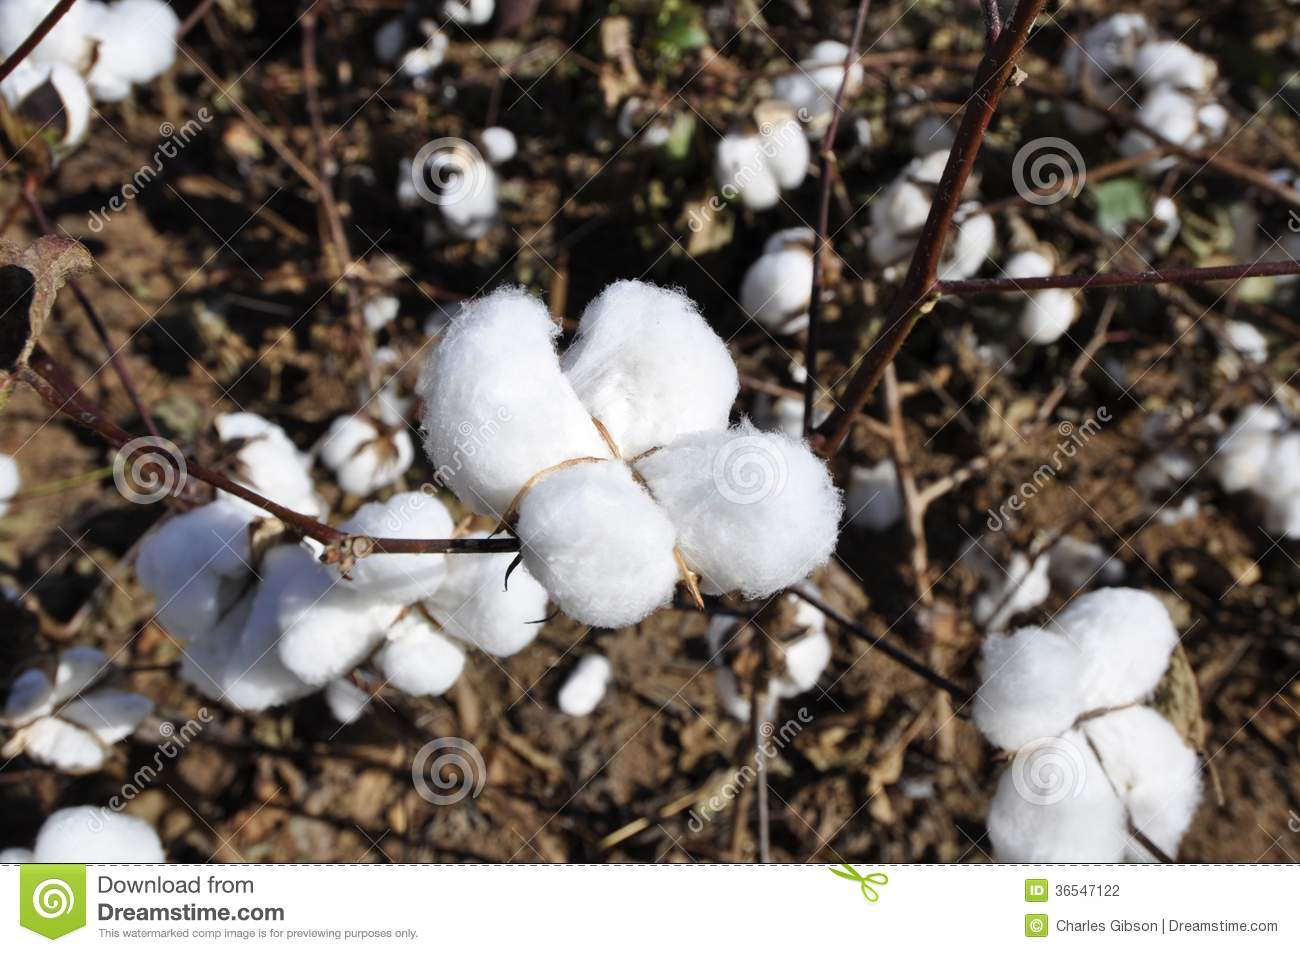 Cotton plants stock photo Image of product crop flora 36547122